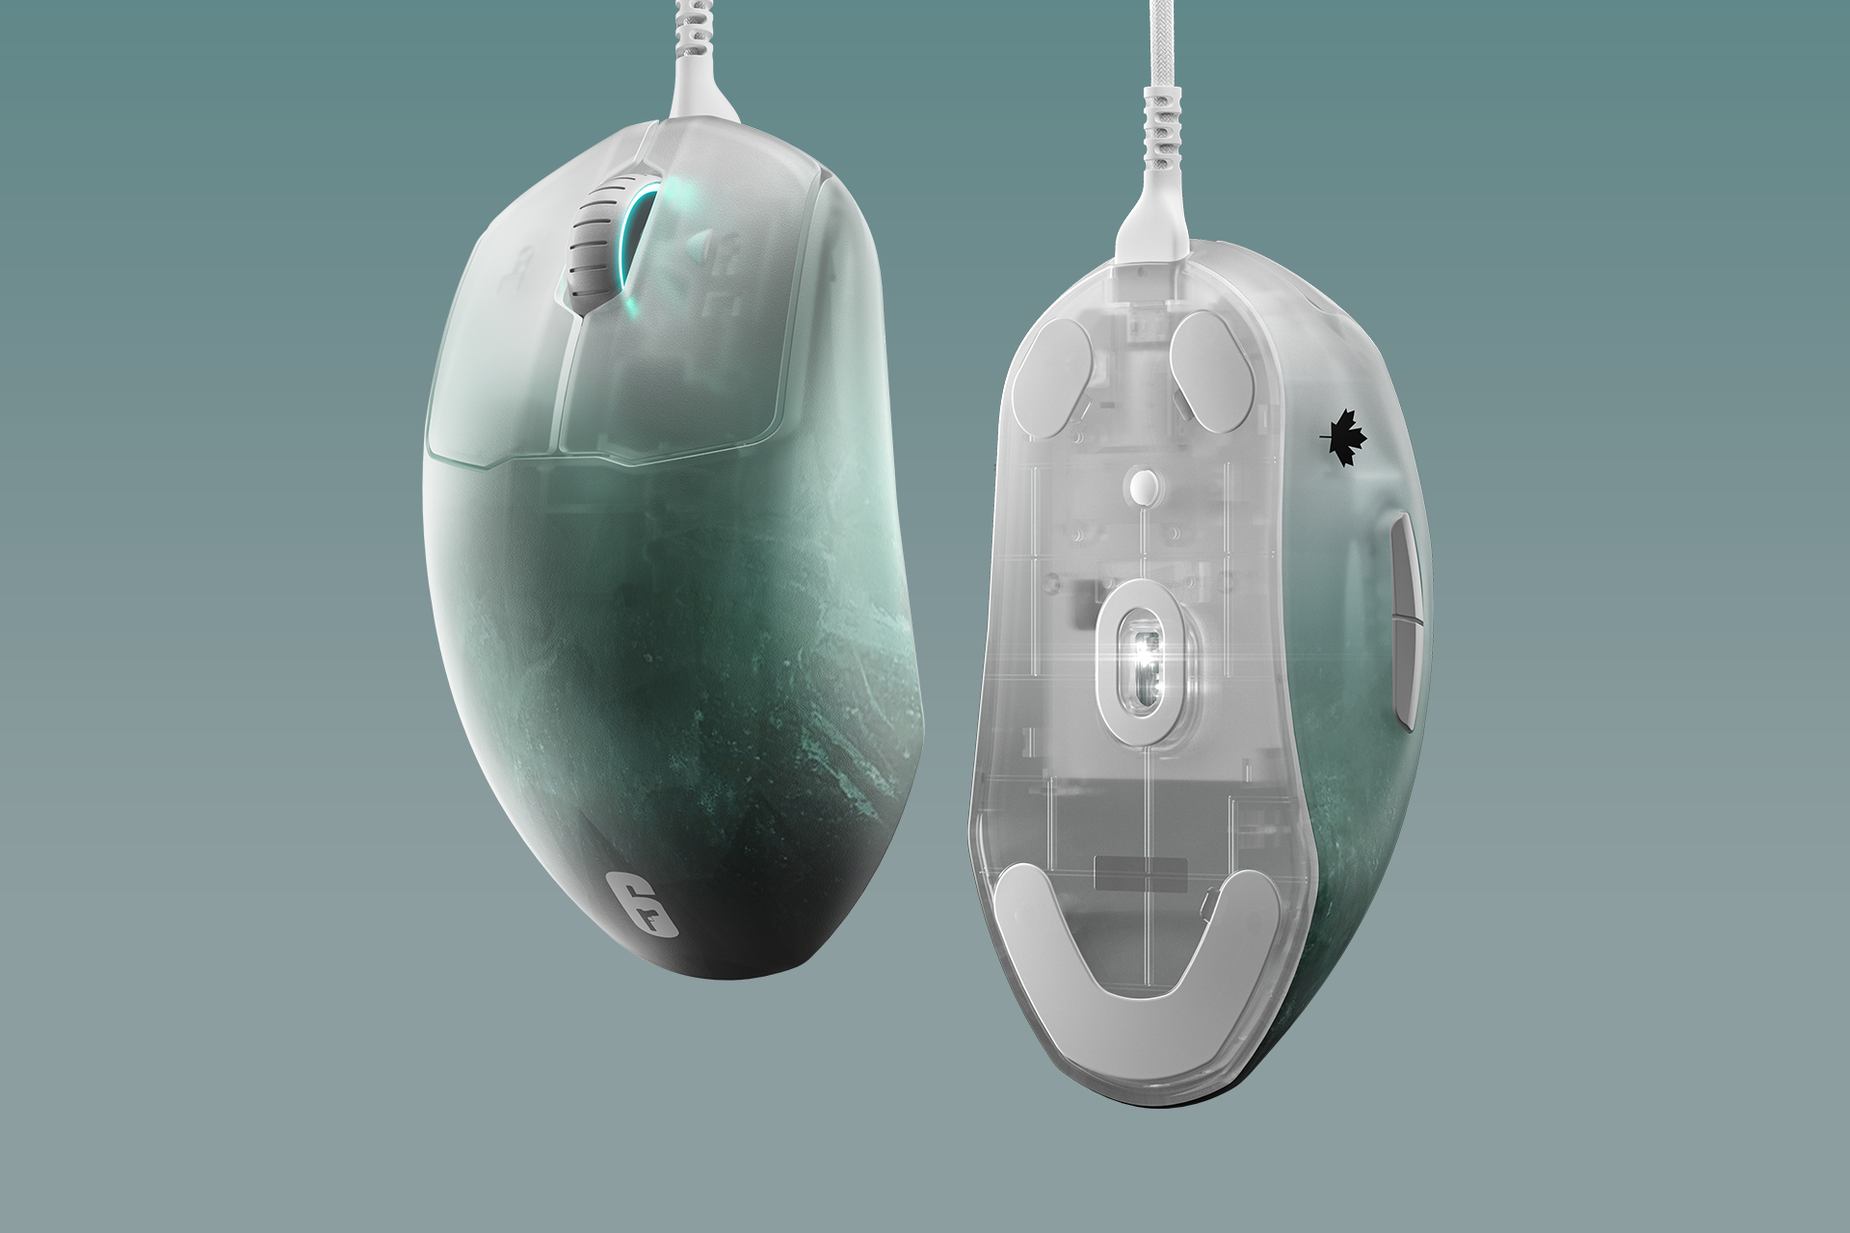 Two Prime mice: one showing the palm rest and the other showing the sensor.